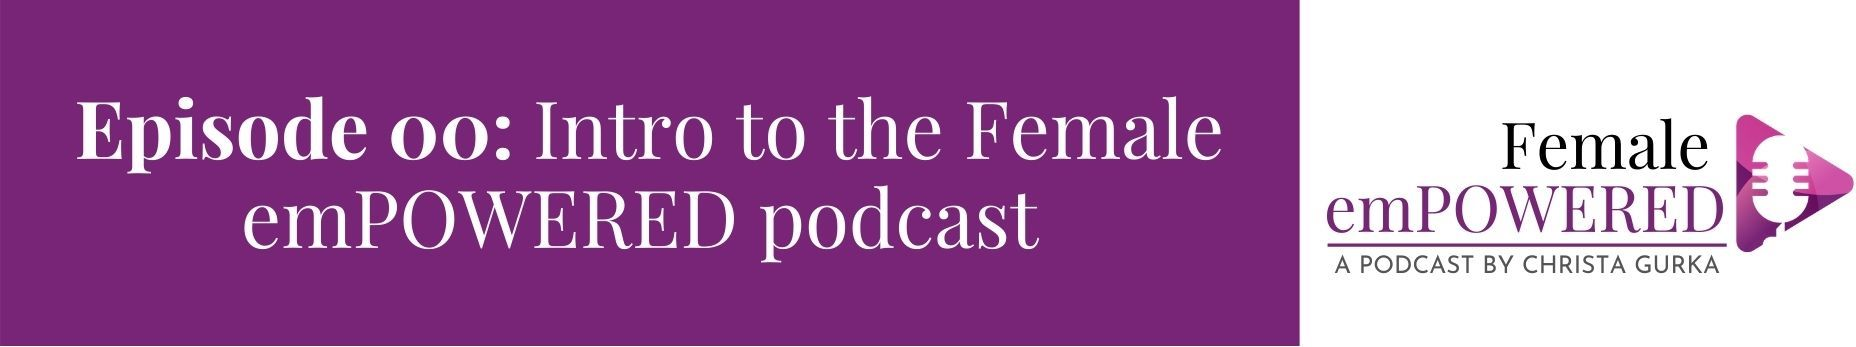 Christa Gurka female empowered podcast cover